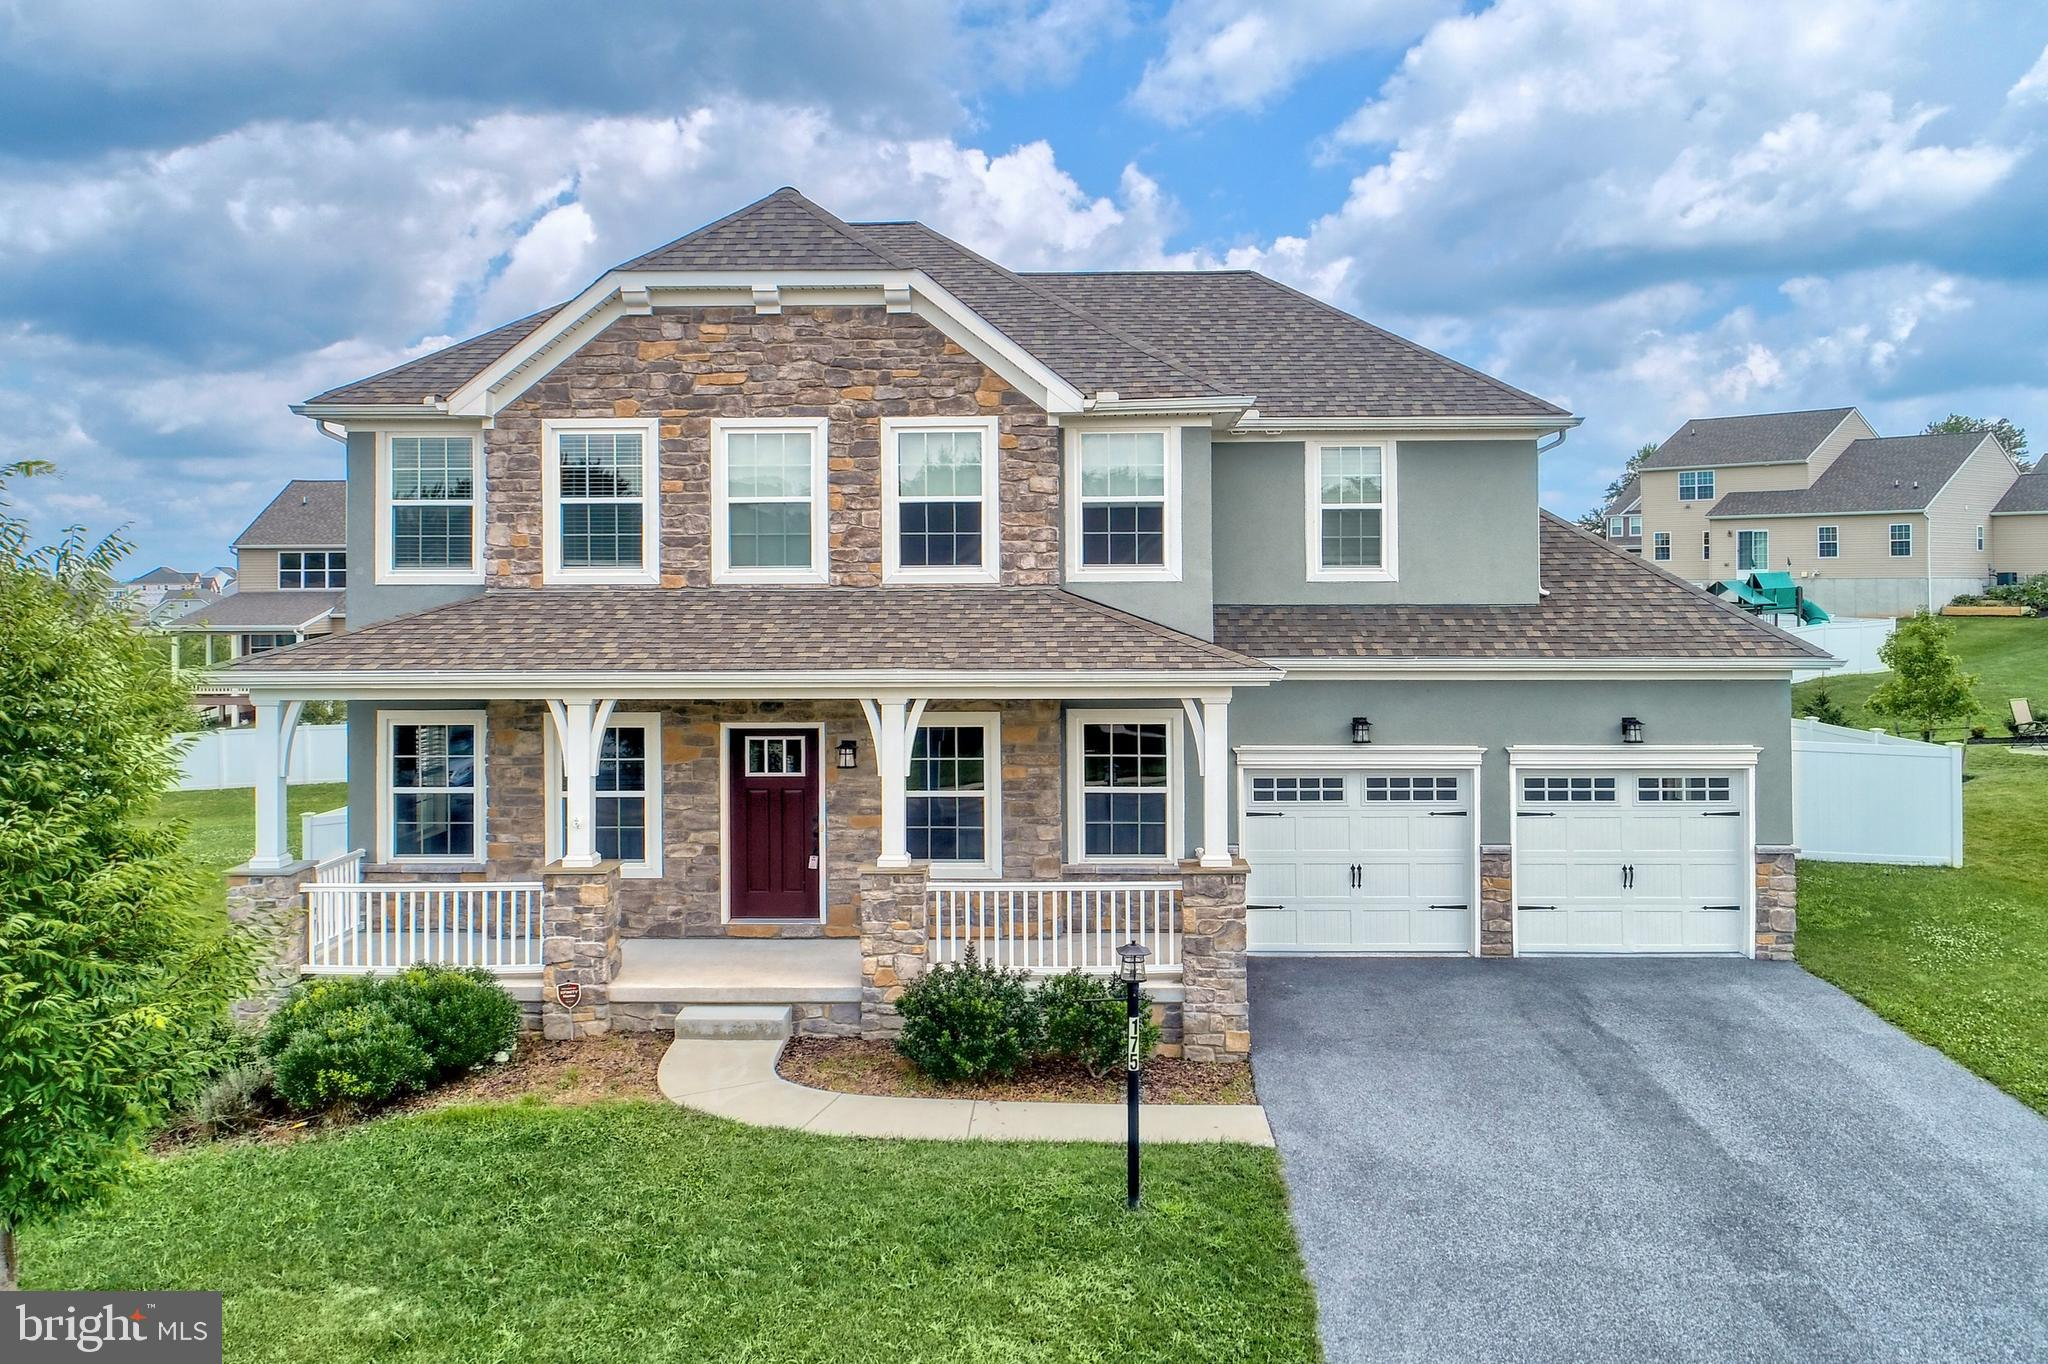 175 SPRING MEADOWS ROAD, MANCHESTER, PA 17345